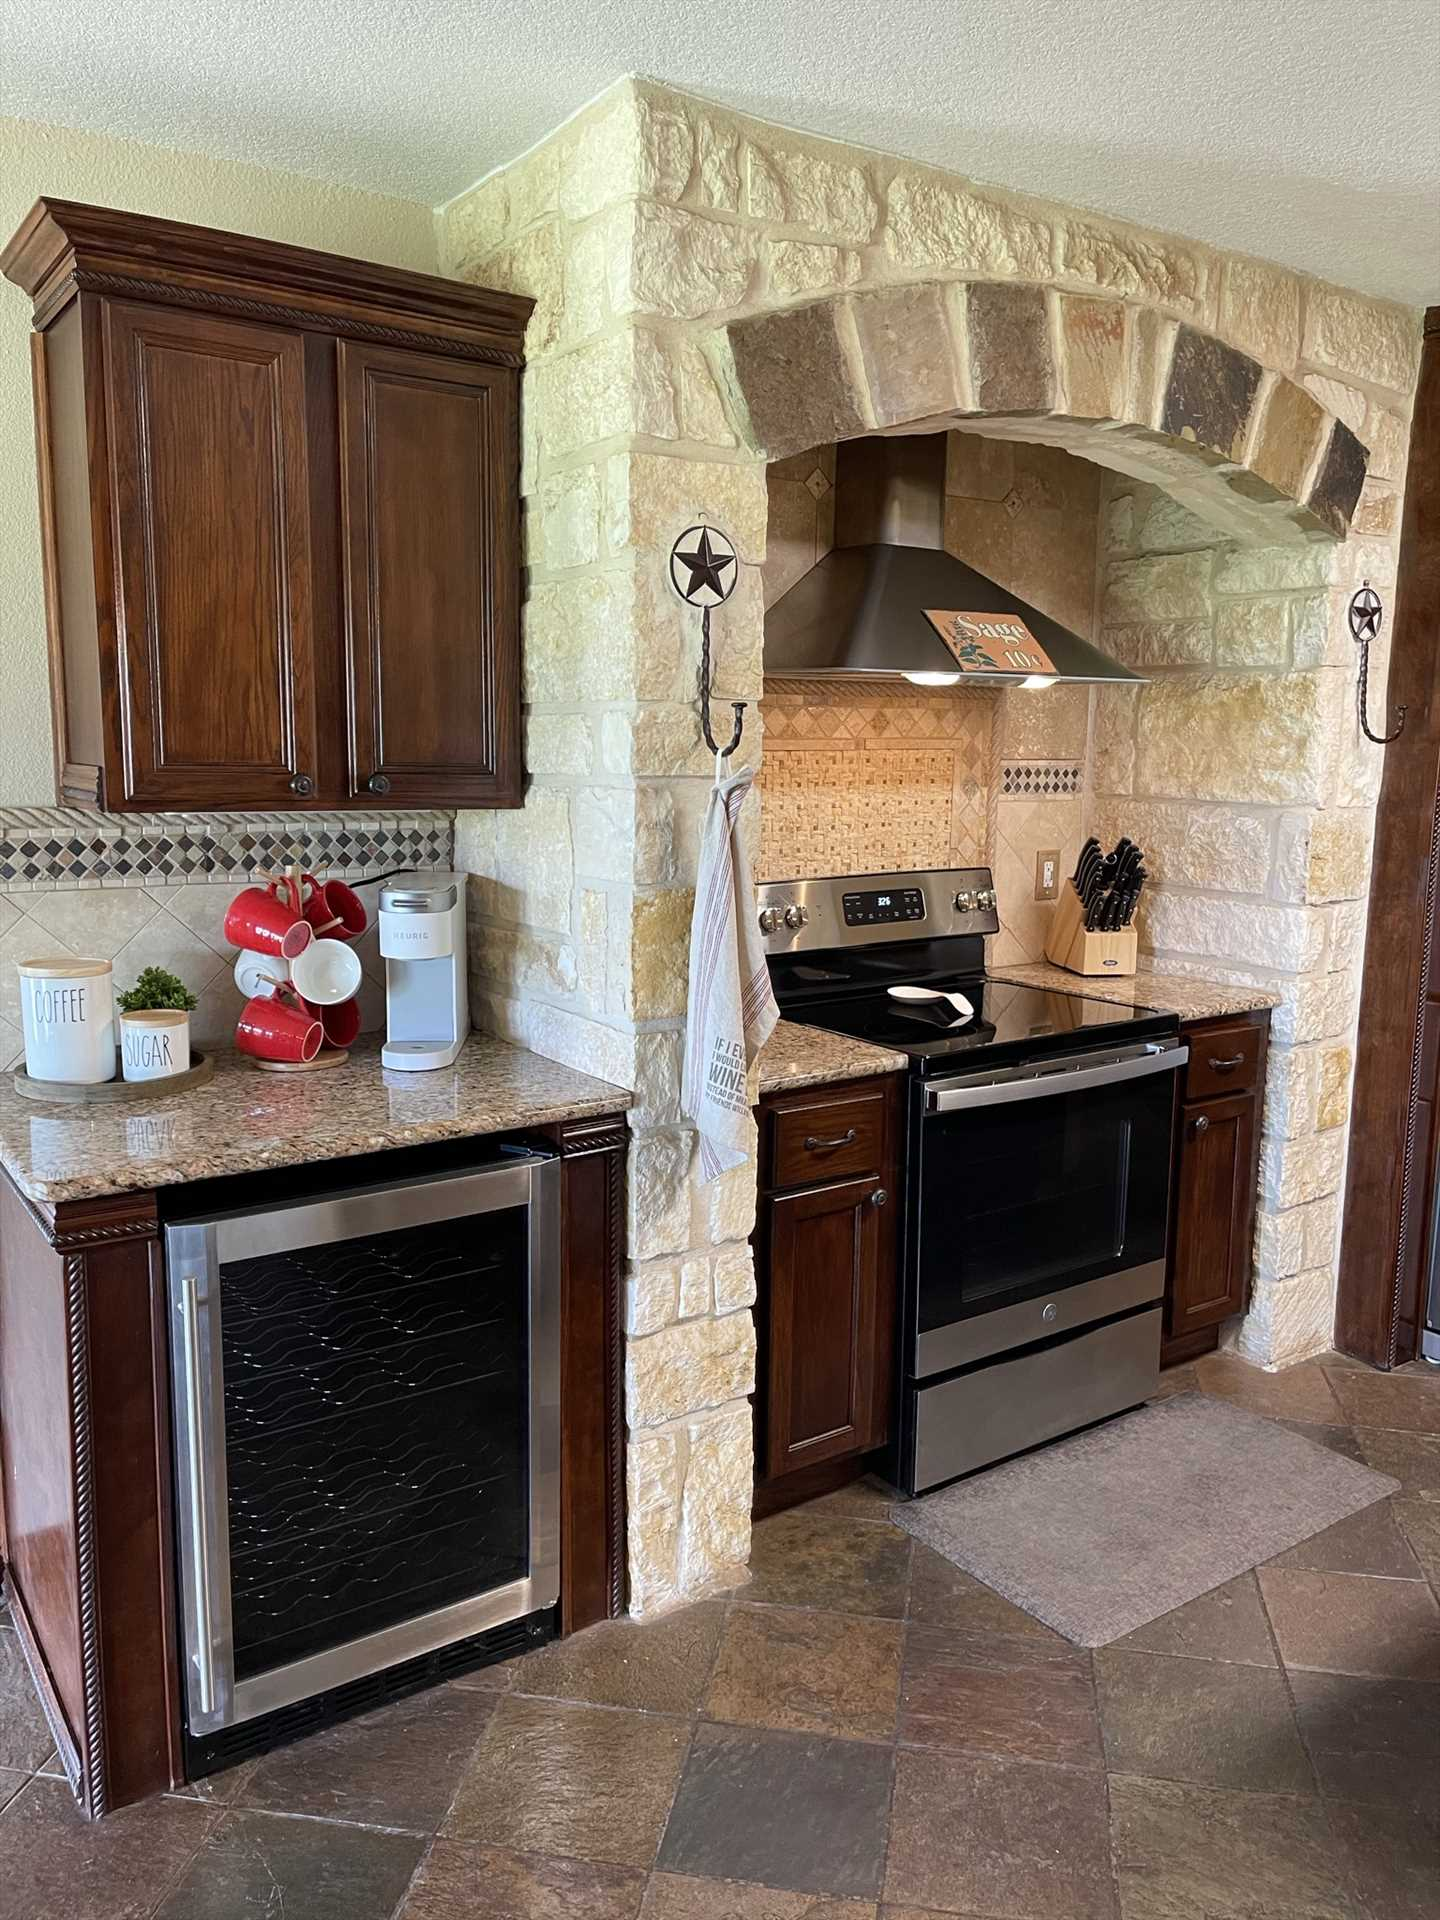 The well-appointed kitchen features not only modern appliances, but pretty and functional wood and stone highlights.